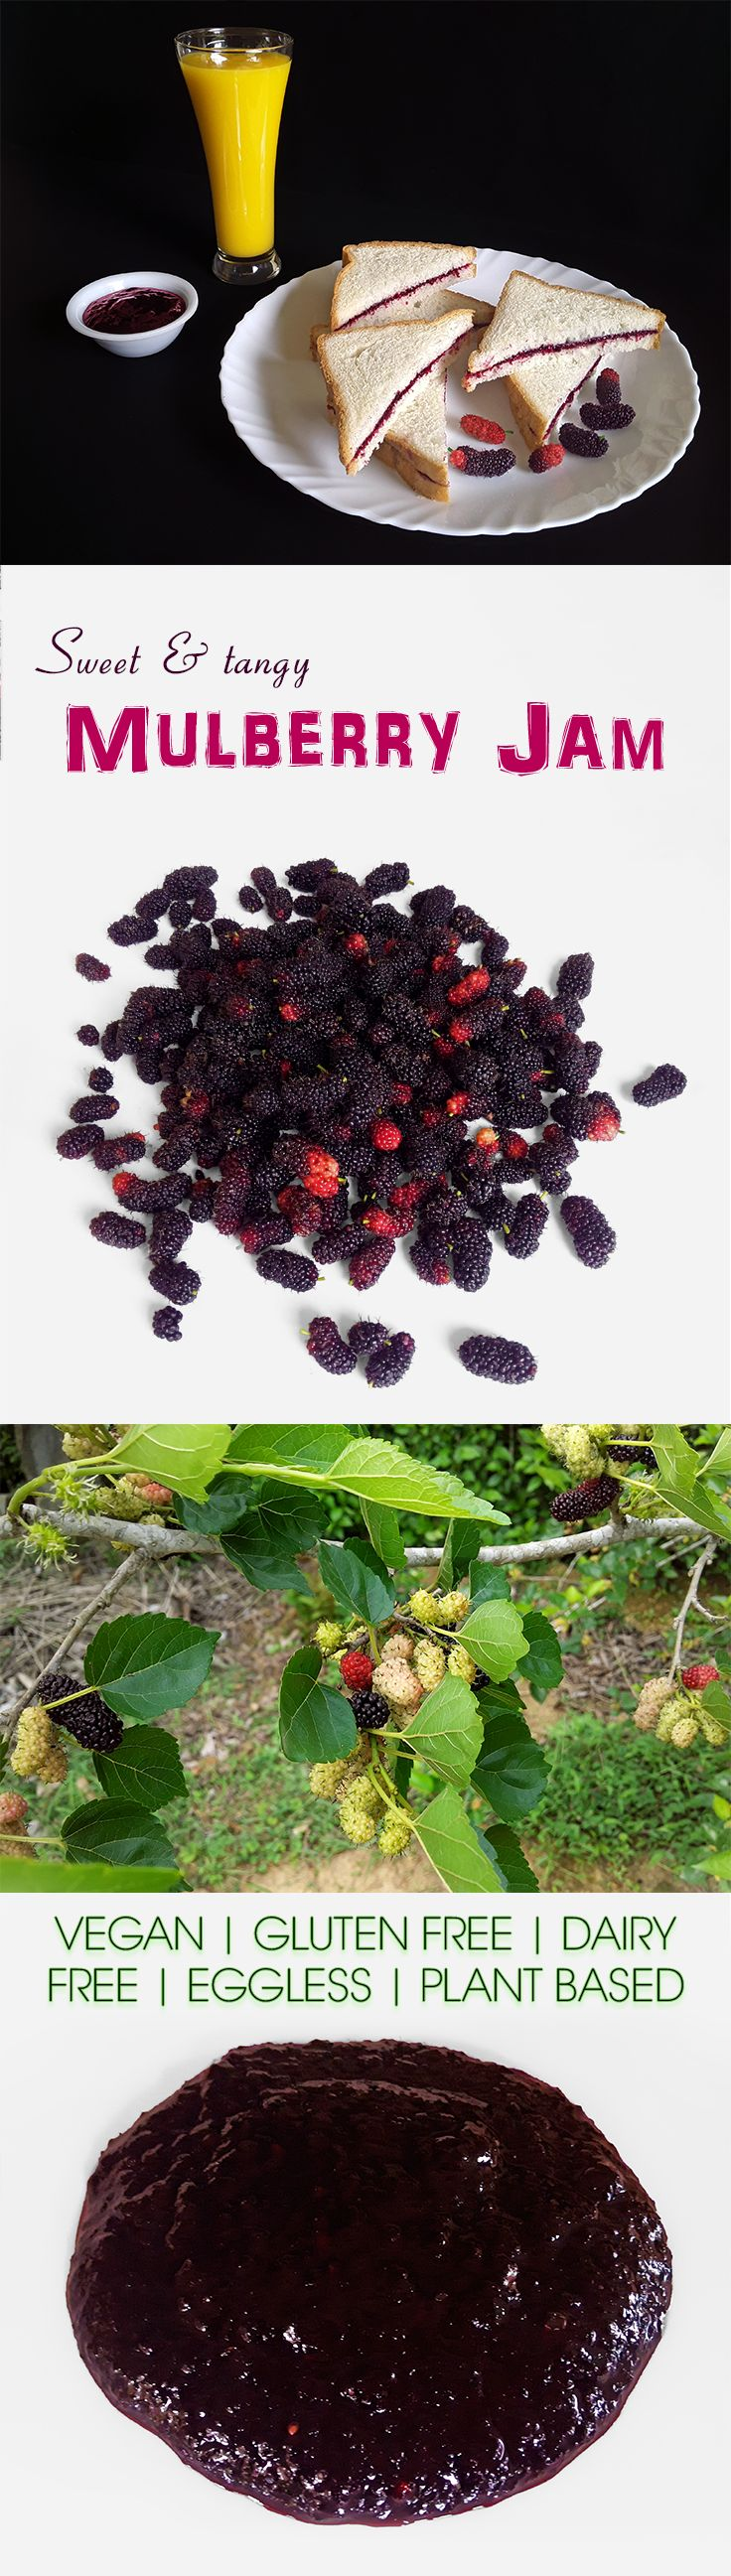 Mulberry Jam - A superbly delicious, quick and easy to cook, tangy, mouthwatering mulberry jam for marvelous gourmet sandwiches or for dessert.